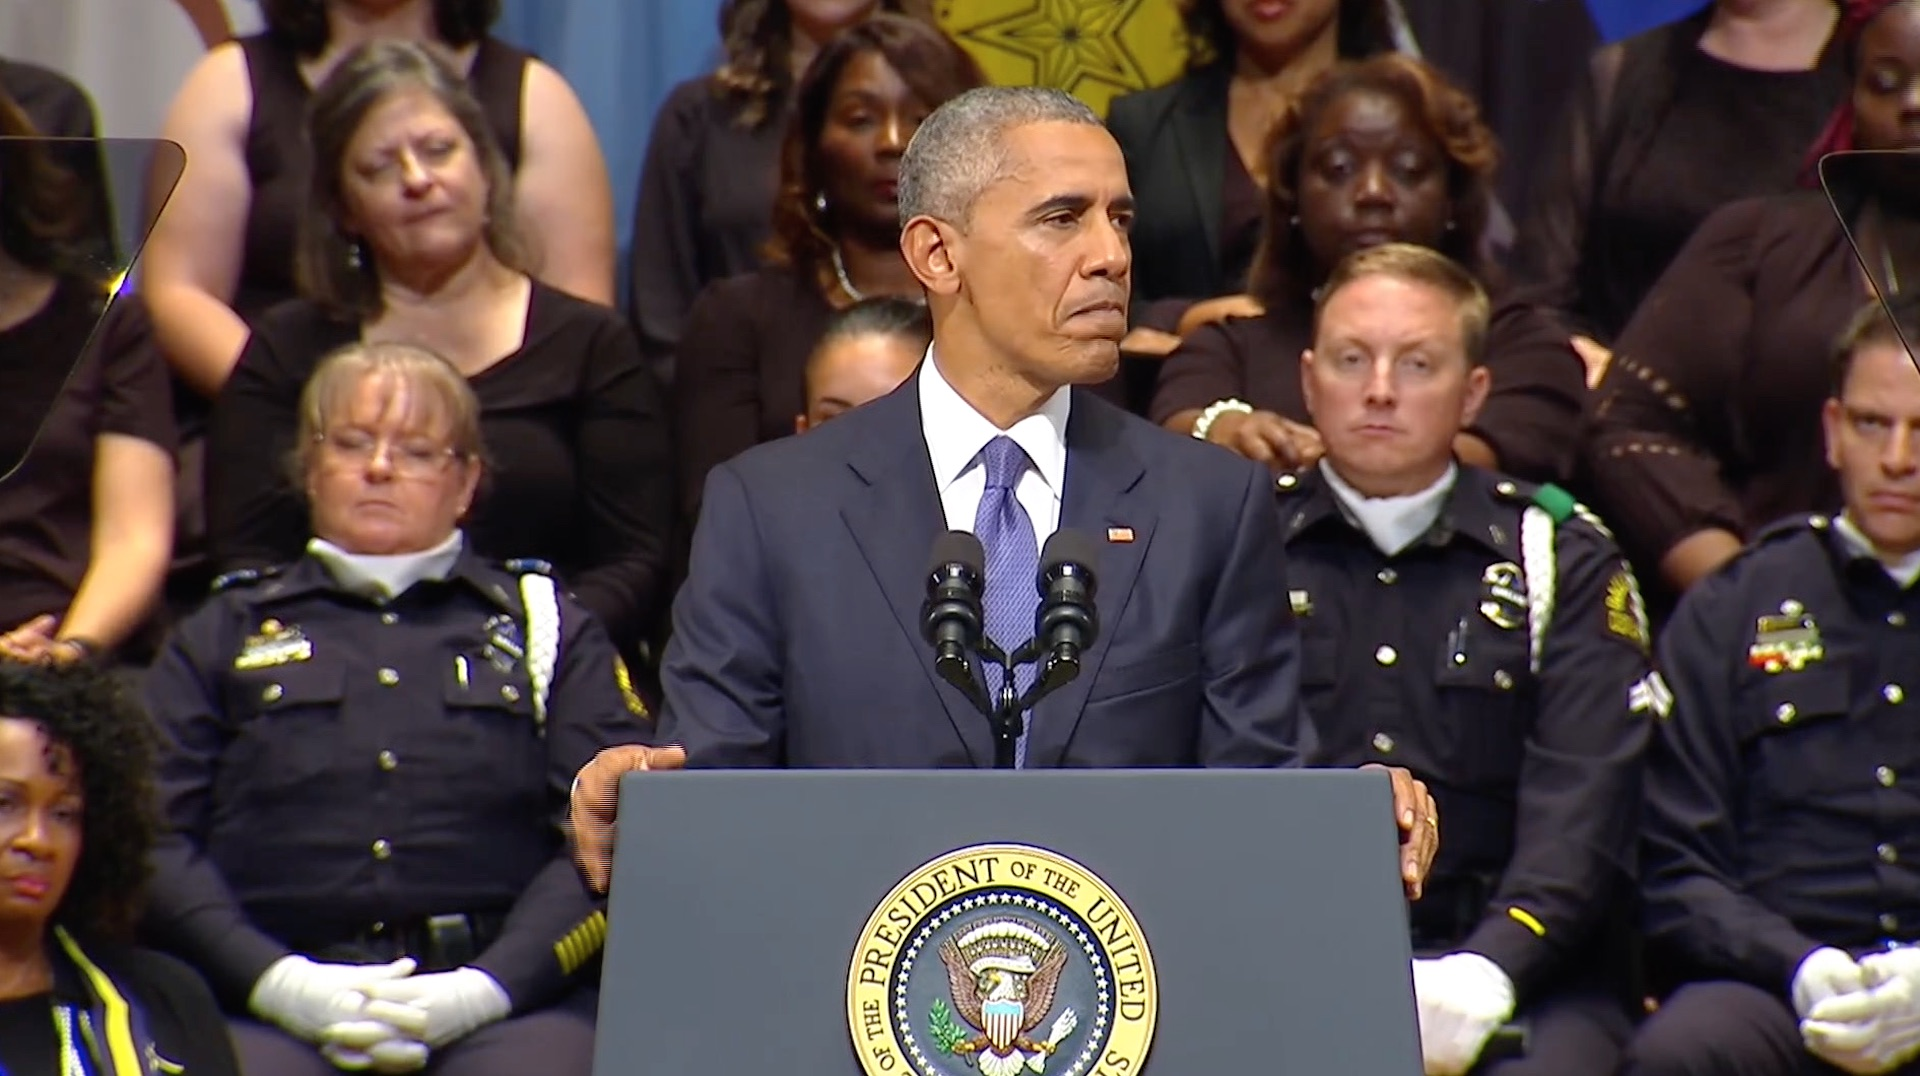 Obama speaks at Dallas memorial and says 'we ask police to do too much'